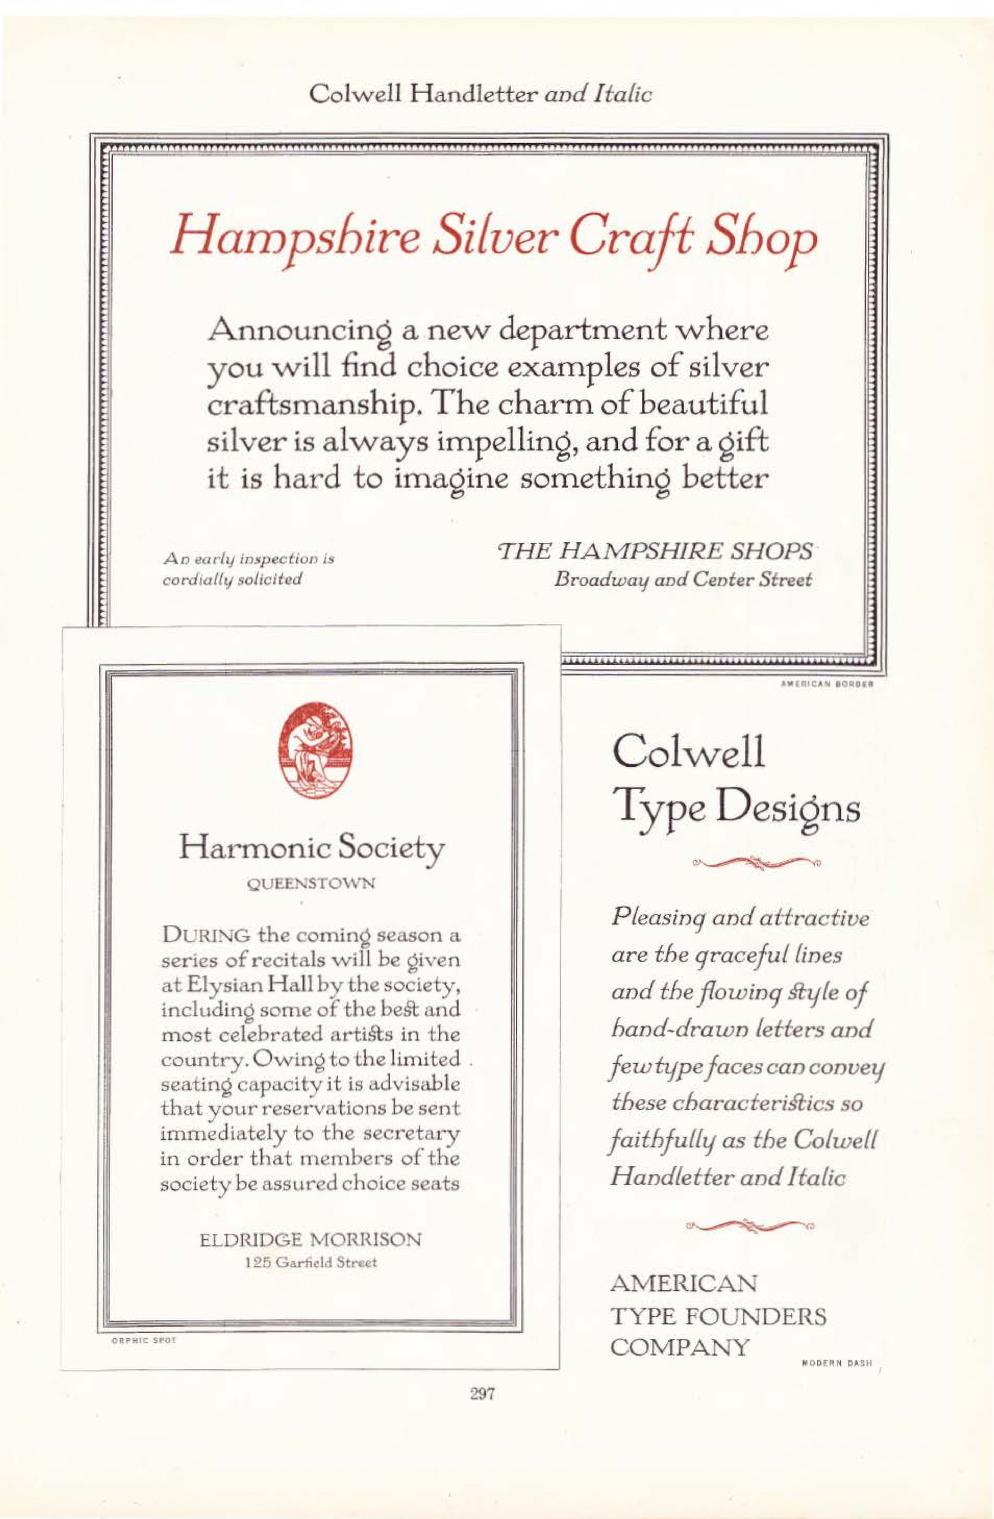 Page 297 of the 1923 ATF type catalogue. Top: an advertisement for a newly opened silver craft shop. Bottom left: an invitation to members of the Harmonic Society to reserve seats for the season's recitals. Bottom right: ATF's description of Colwell Handl